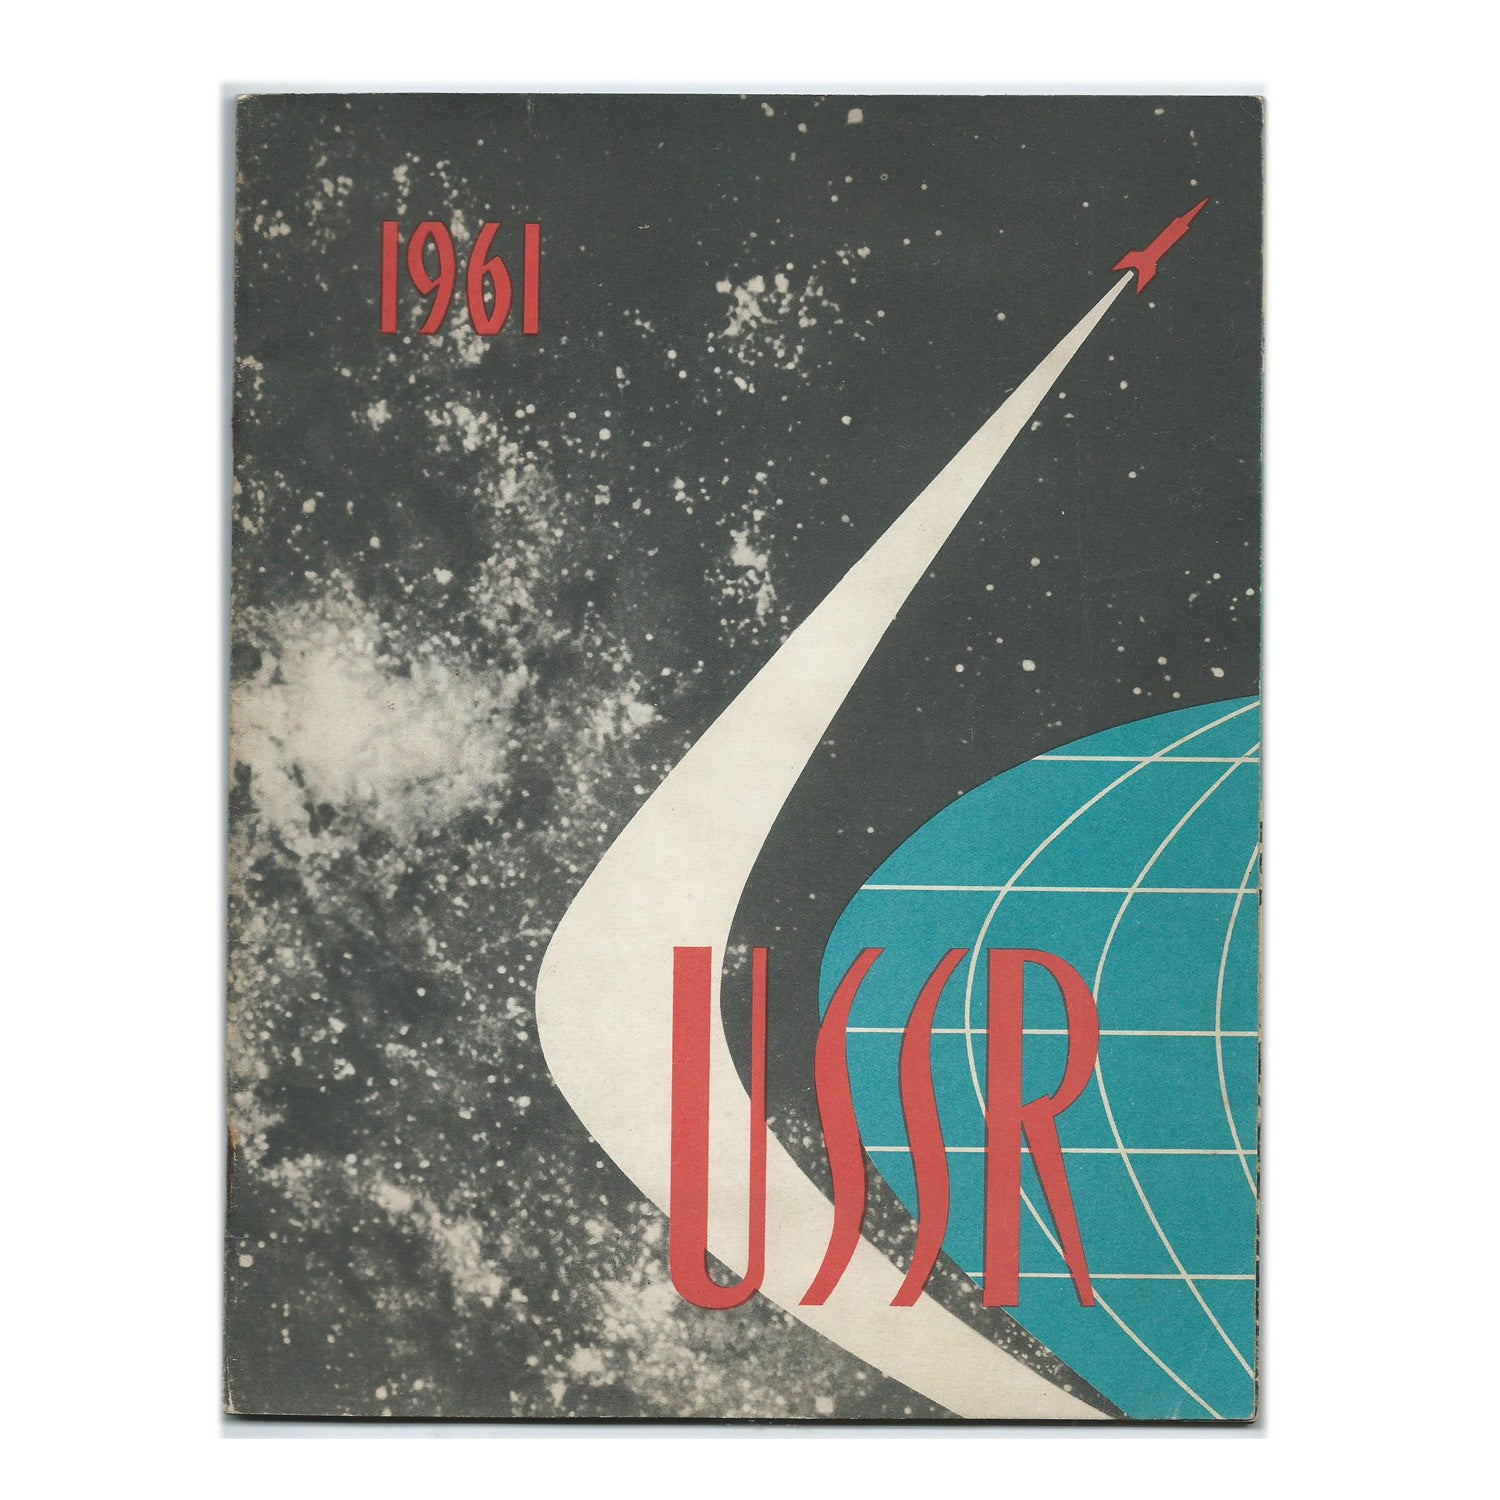 USSR (booklet)